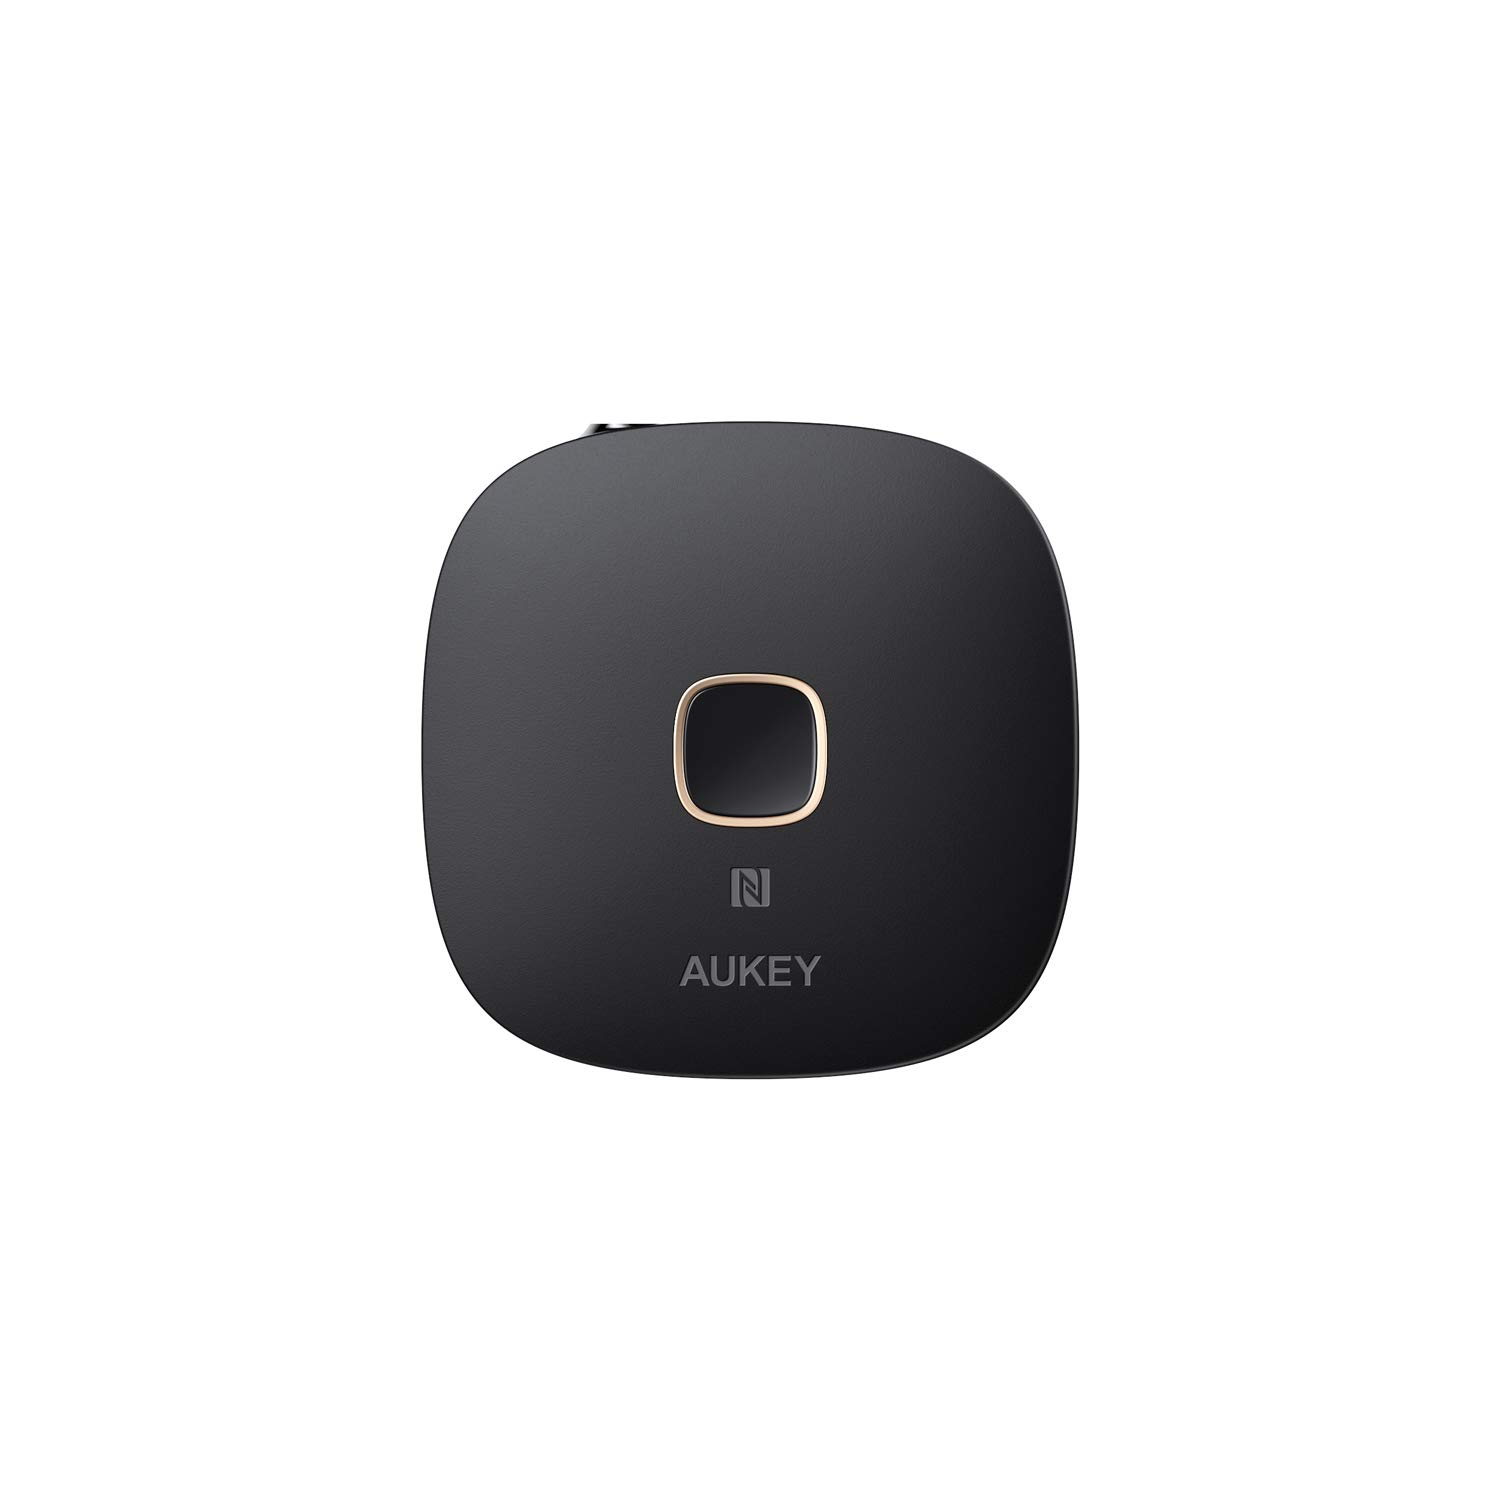 Receptor Bluetooth 5 Aukey Br-c16 Nfc - Enabled